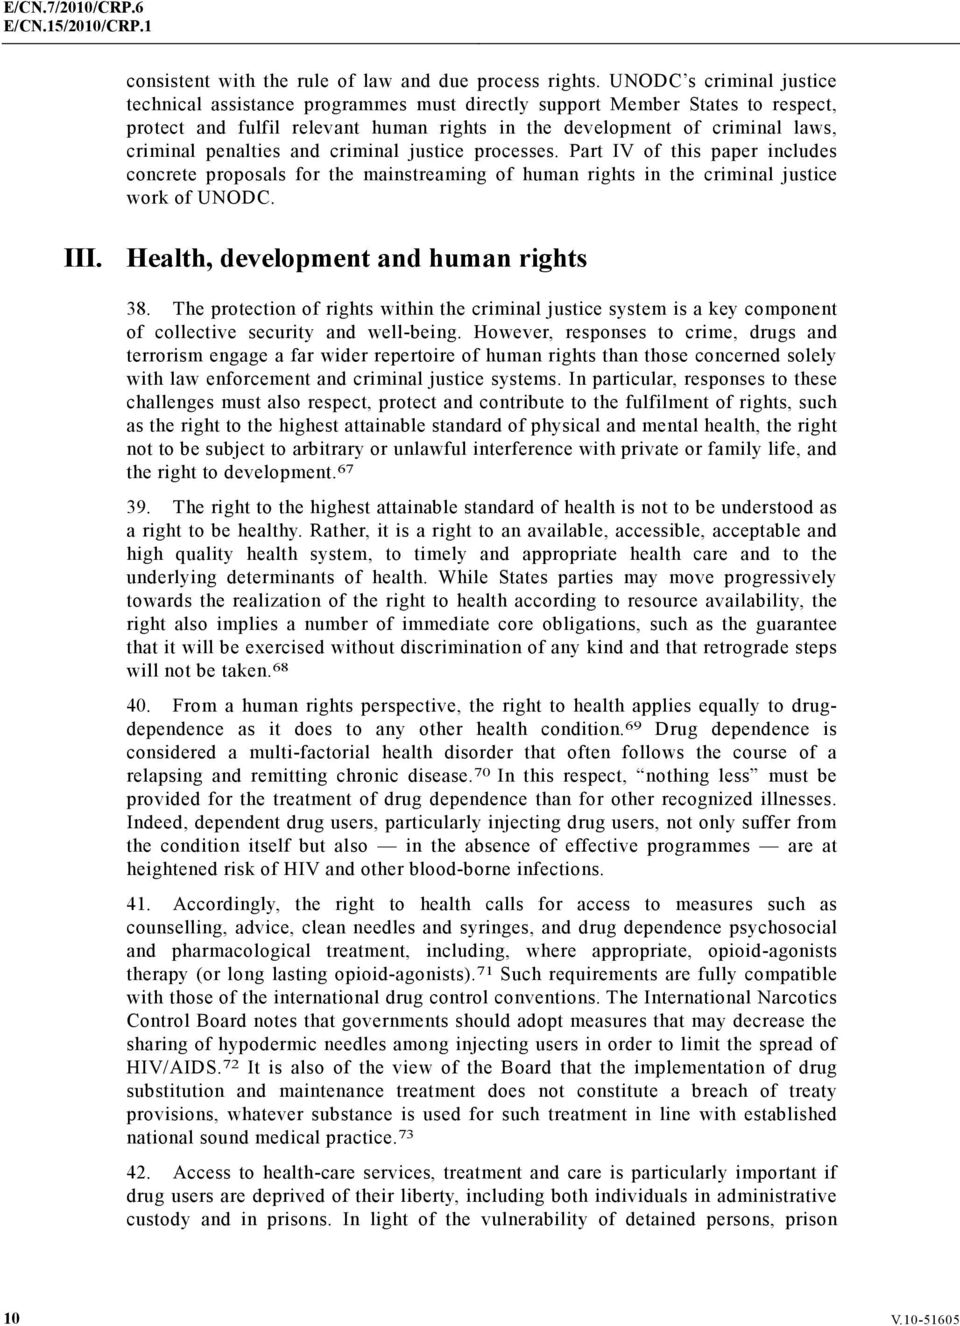 penalties and criminal justice processes. Part IV of this paper includes concrete proposals for the mainstreaming of human rights in the criminal justice work of UNODC. III.